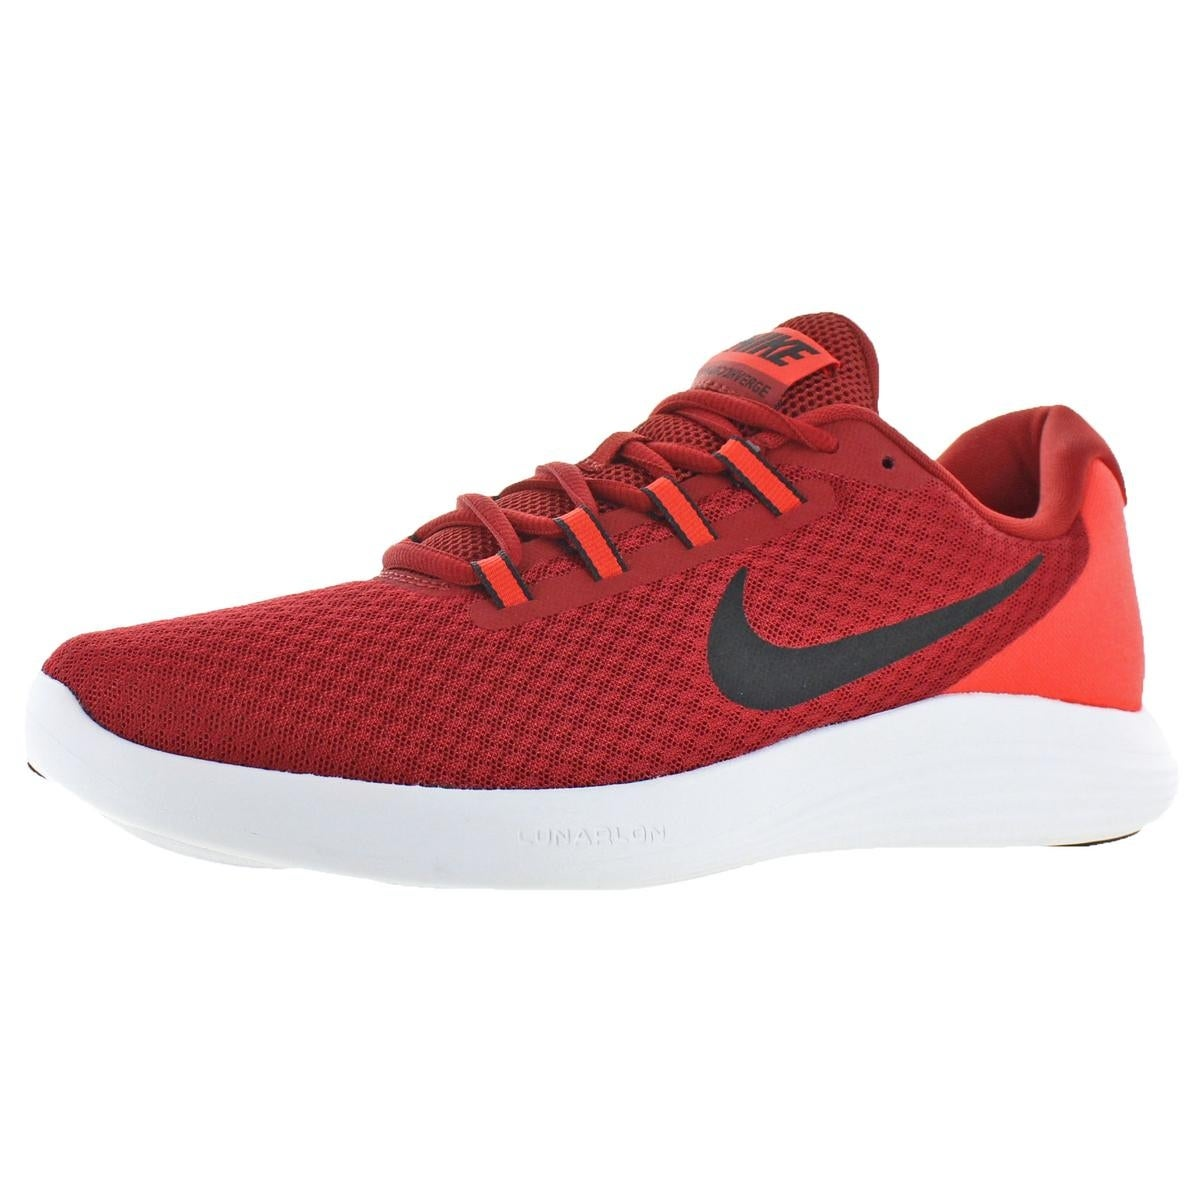 release date: 57267 62d7e Shop Nike Mens Lunarconverge Running Shoes Lightweight Breathable - Free  Shipping On Orders Over  45 - Overstock - 22670944